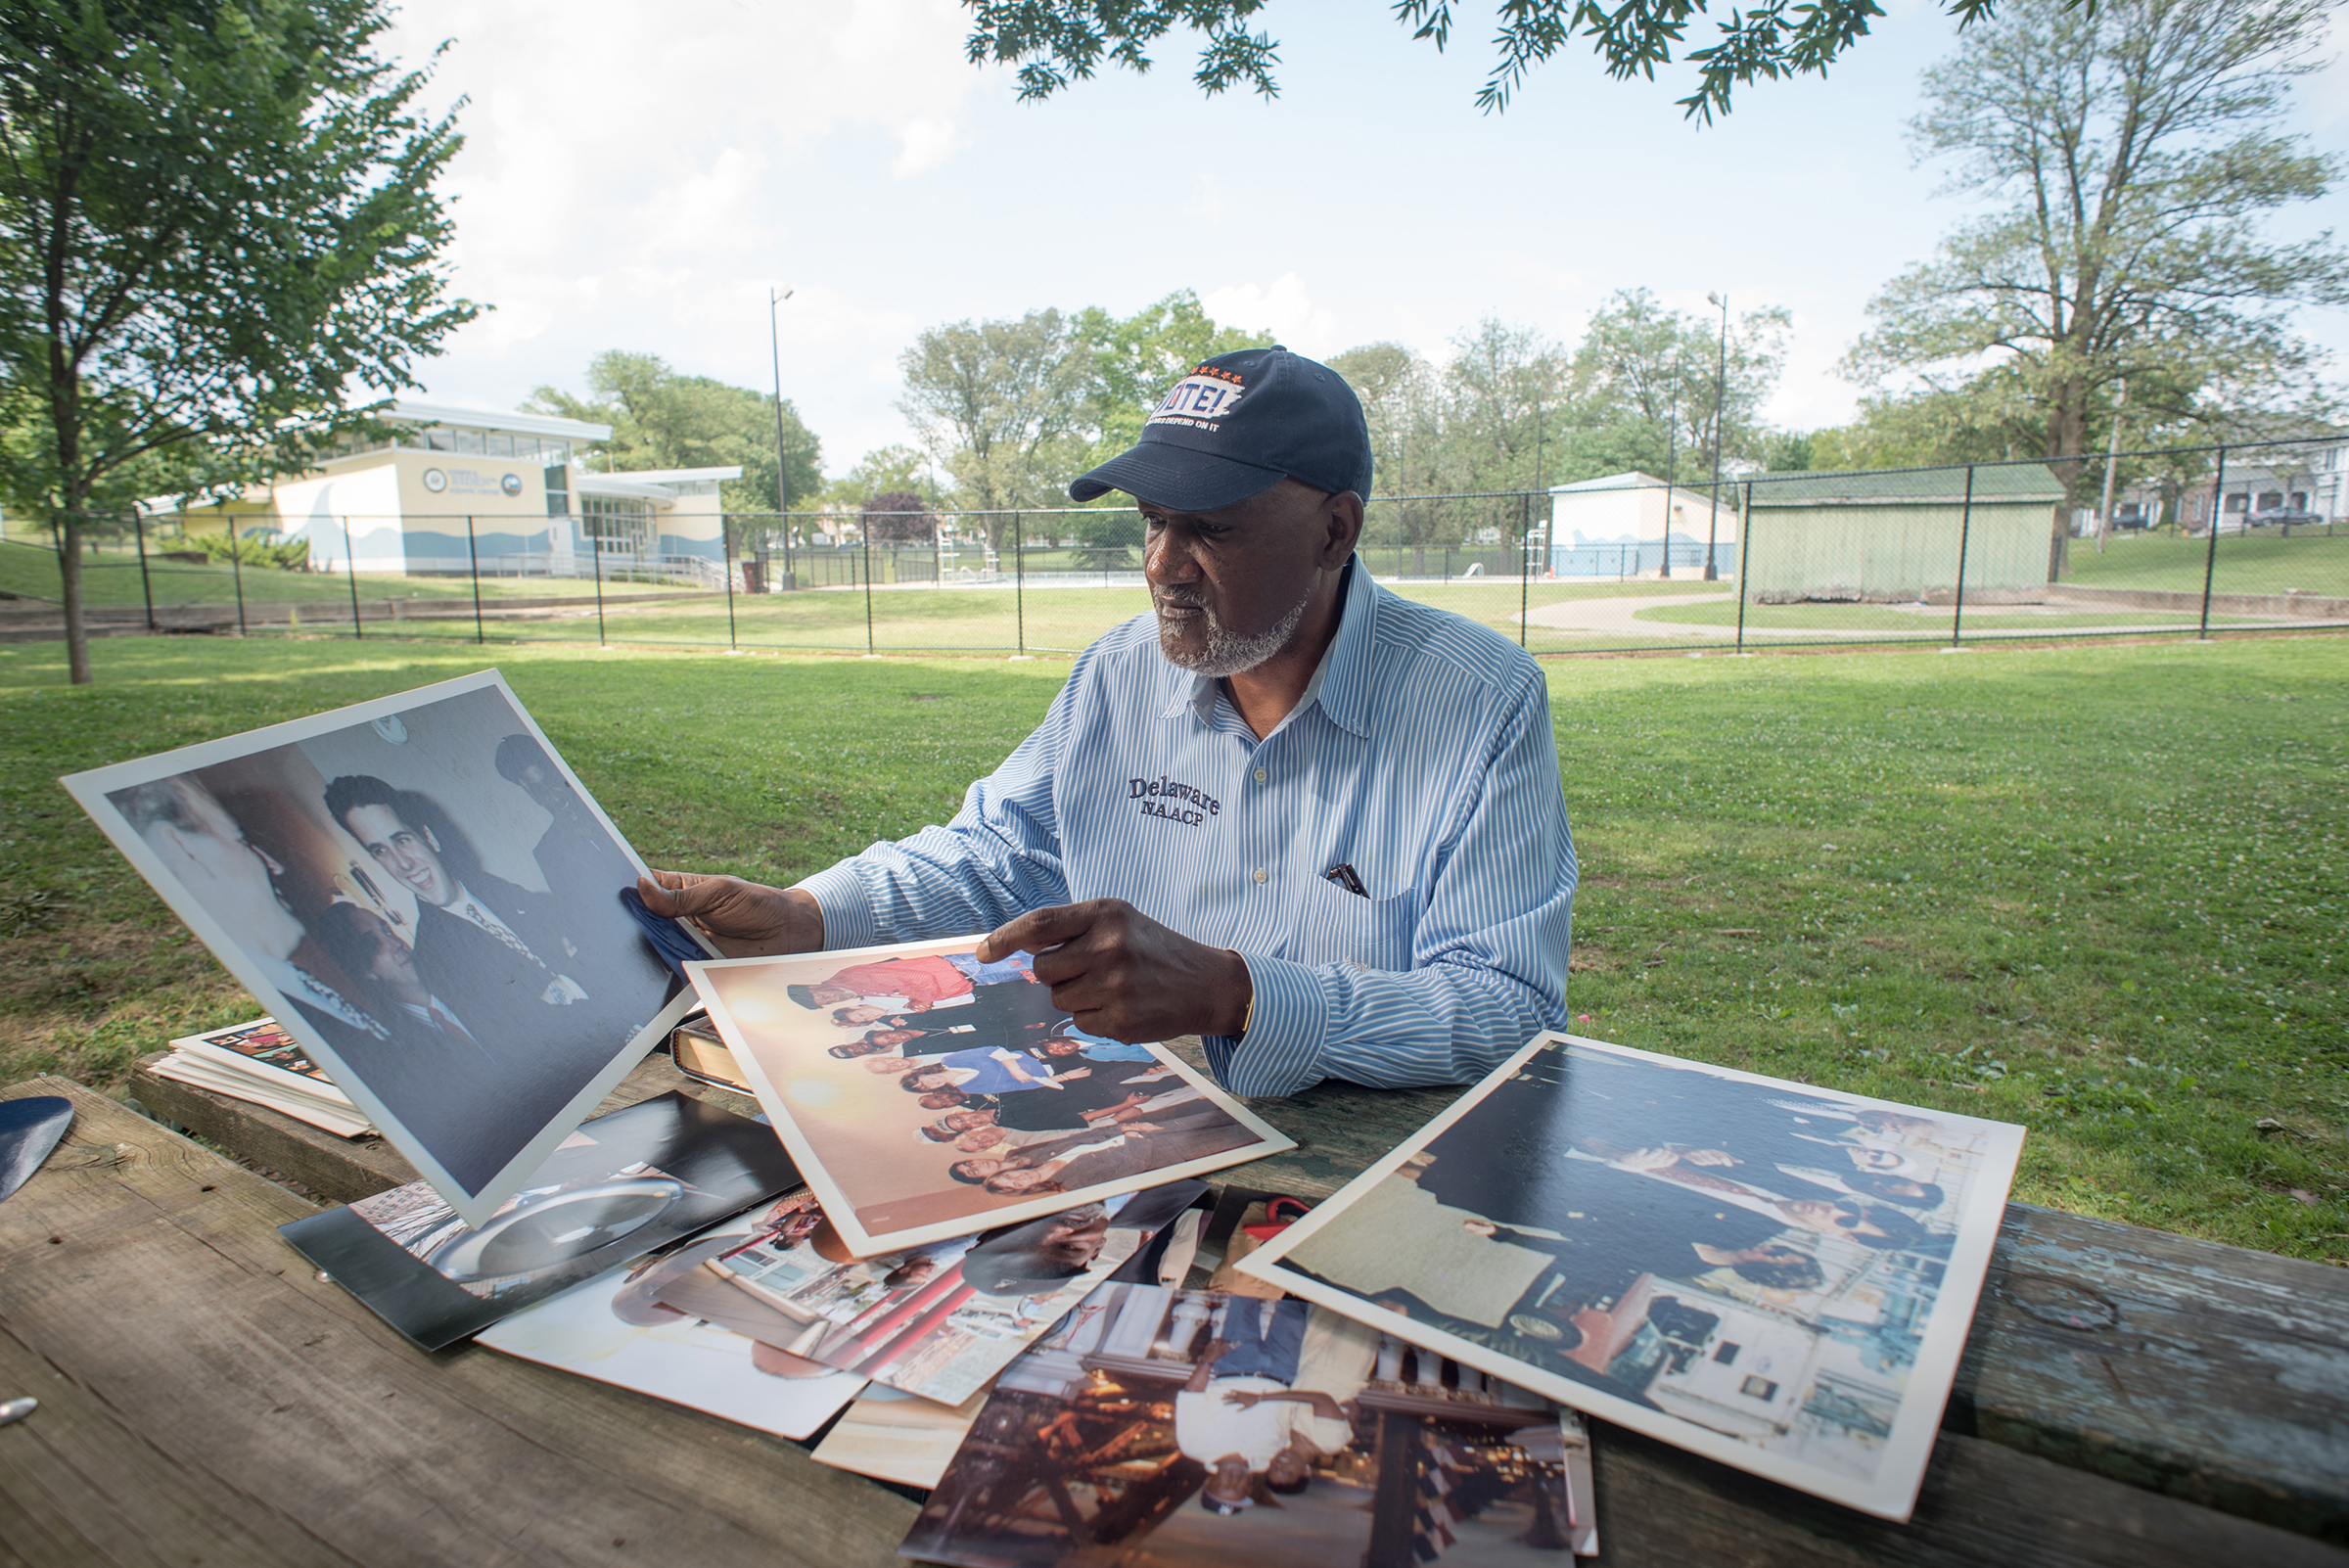 Smith displays some of the photos documenting his work as a Civil Rights leader and his decades long friendship with former Vice President Joe Biden near the pool where they first met as young men in Wilmington, Del. on July 07, 2019